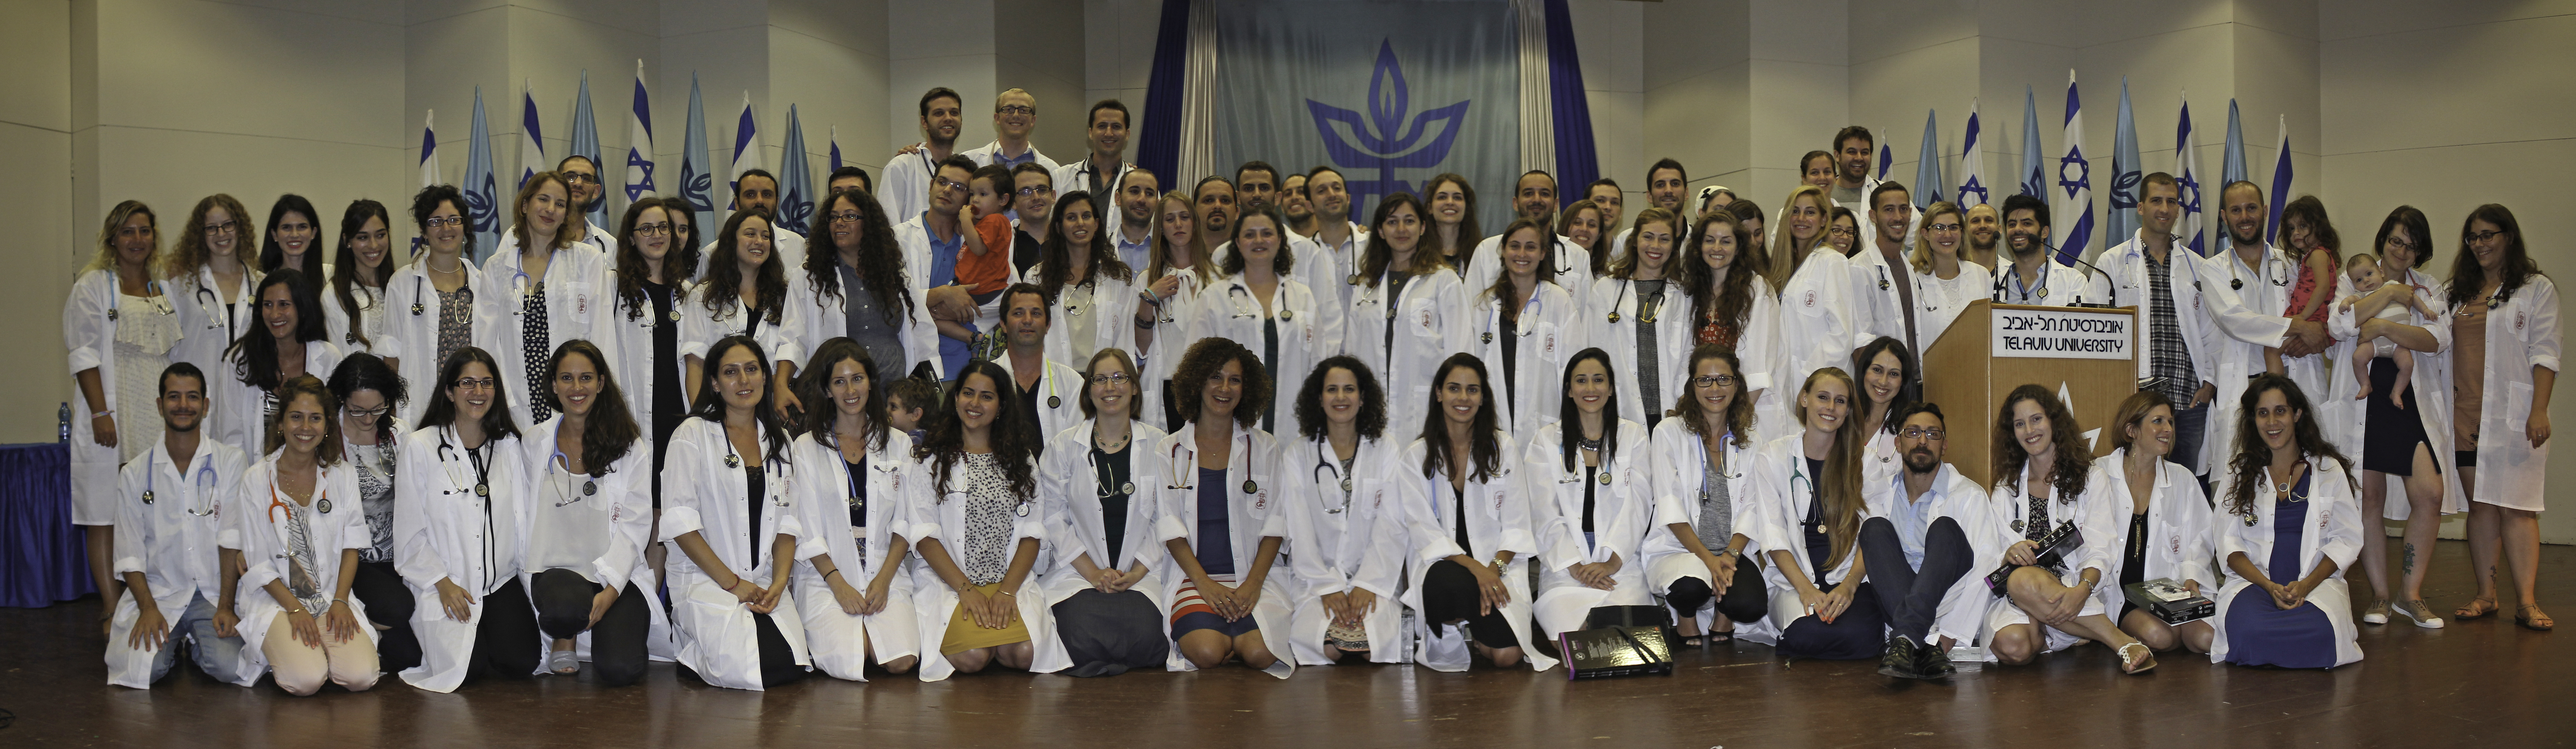 Class picture medical